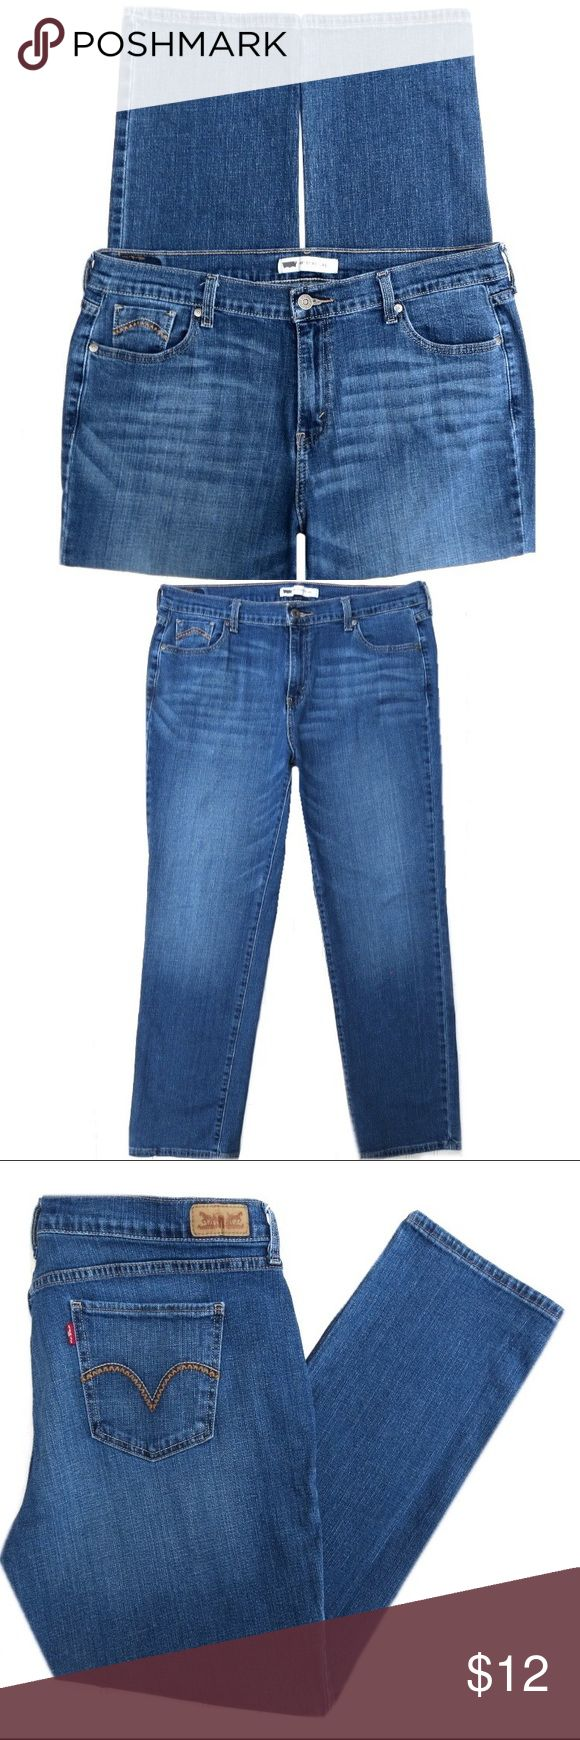 """Levis 505 Straight Leg Jeans Levis 505 Straight Leg stretch jeans. Medium blue, distressed wash. Cotton/Spandex. Size 16 Short. They have a 10"""" rise and 29"""" inseam. Amazing fit! Levi's Jeans Straight Leg"""